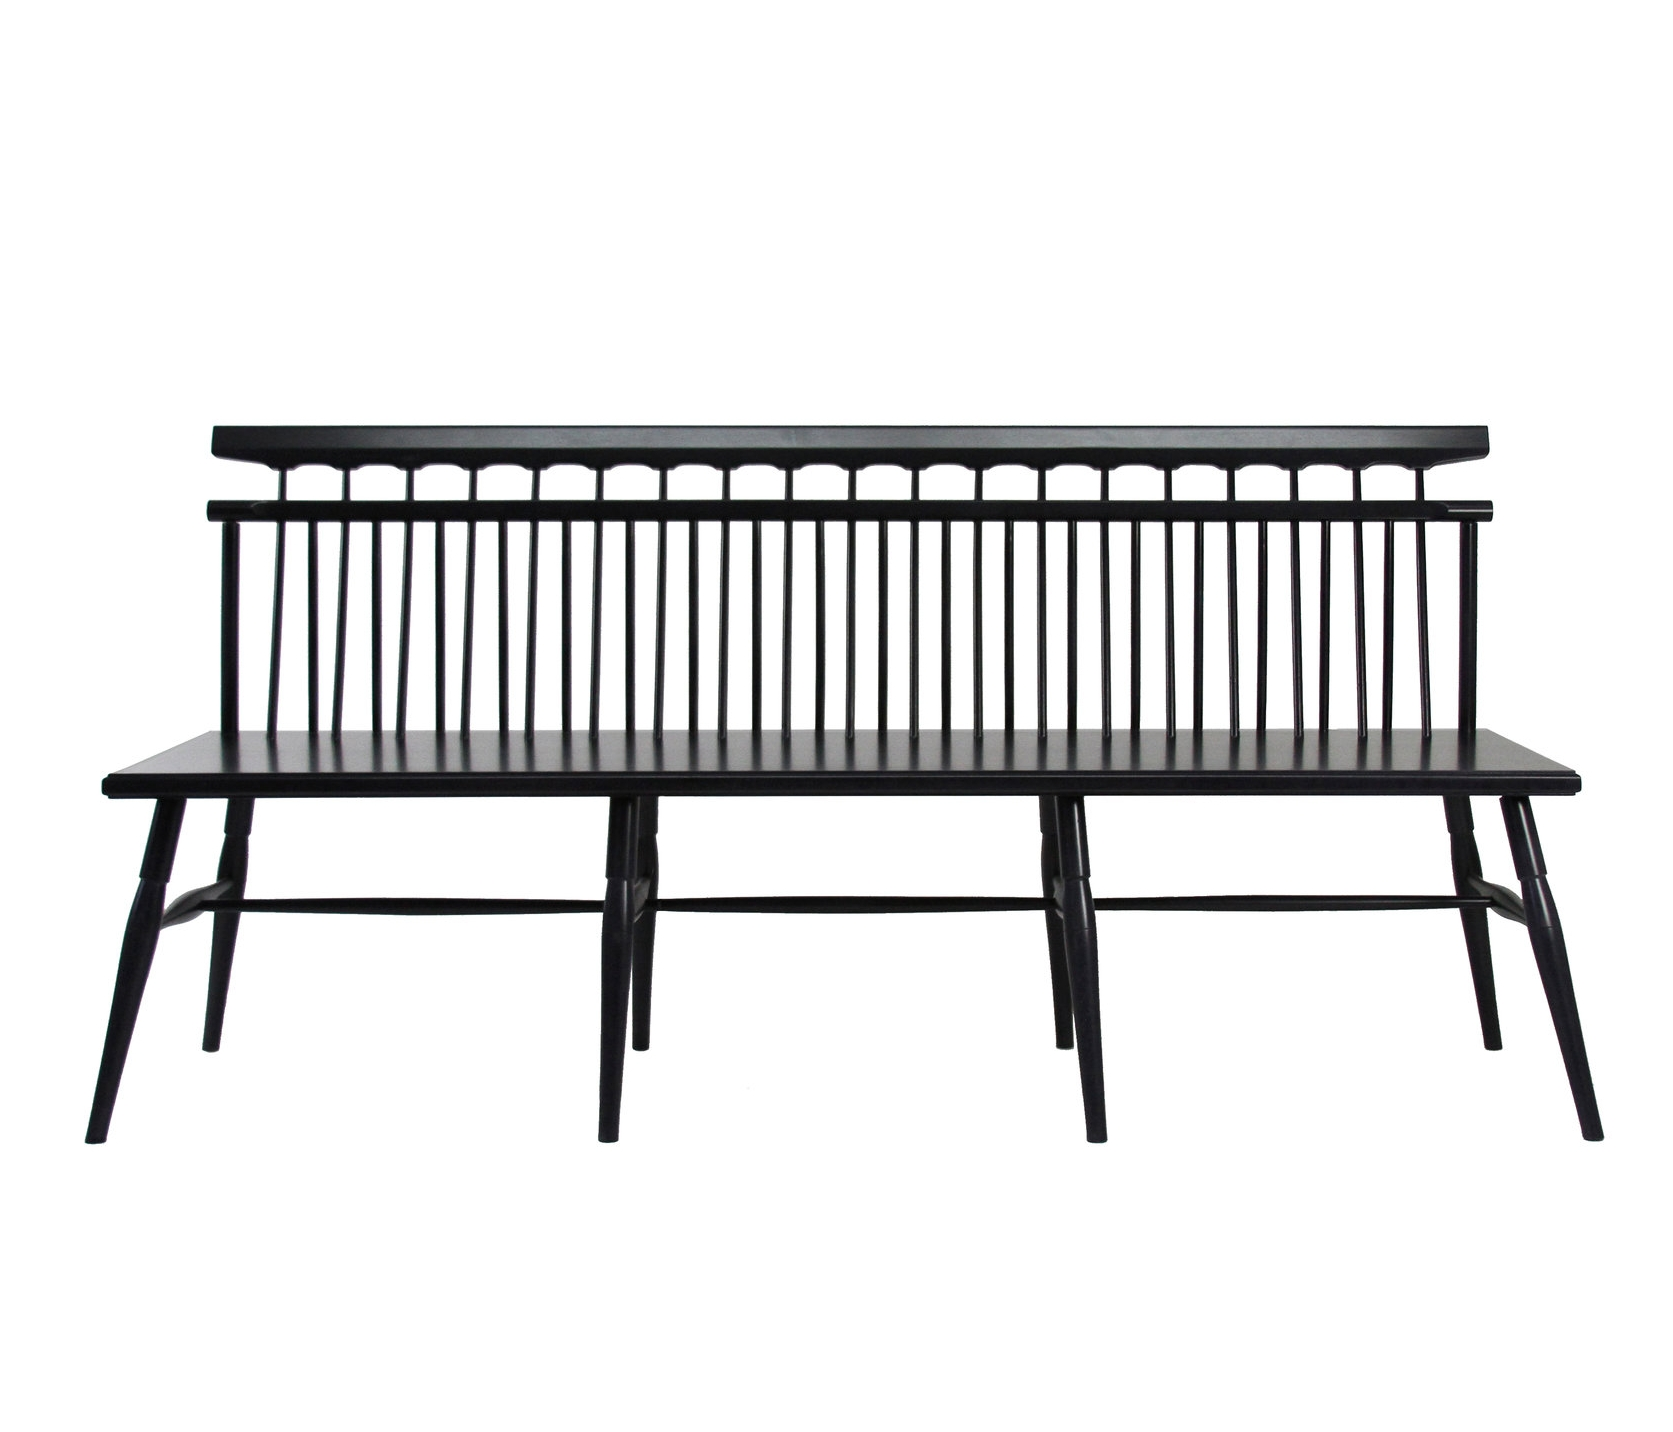 O&G Studio Athenaeum Settee 51 Loveseat Entry Bench Windsor Contemporary Side Moire Seating Modern Andrew Mau Designed Design Interior Braced Seating Ebonized Maple Black Beet Stained Stain